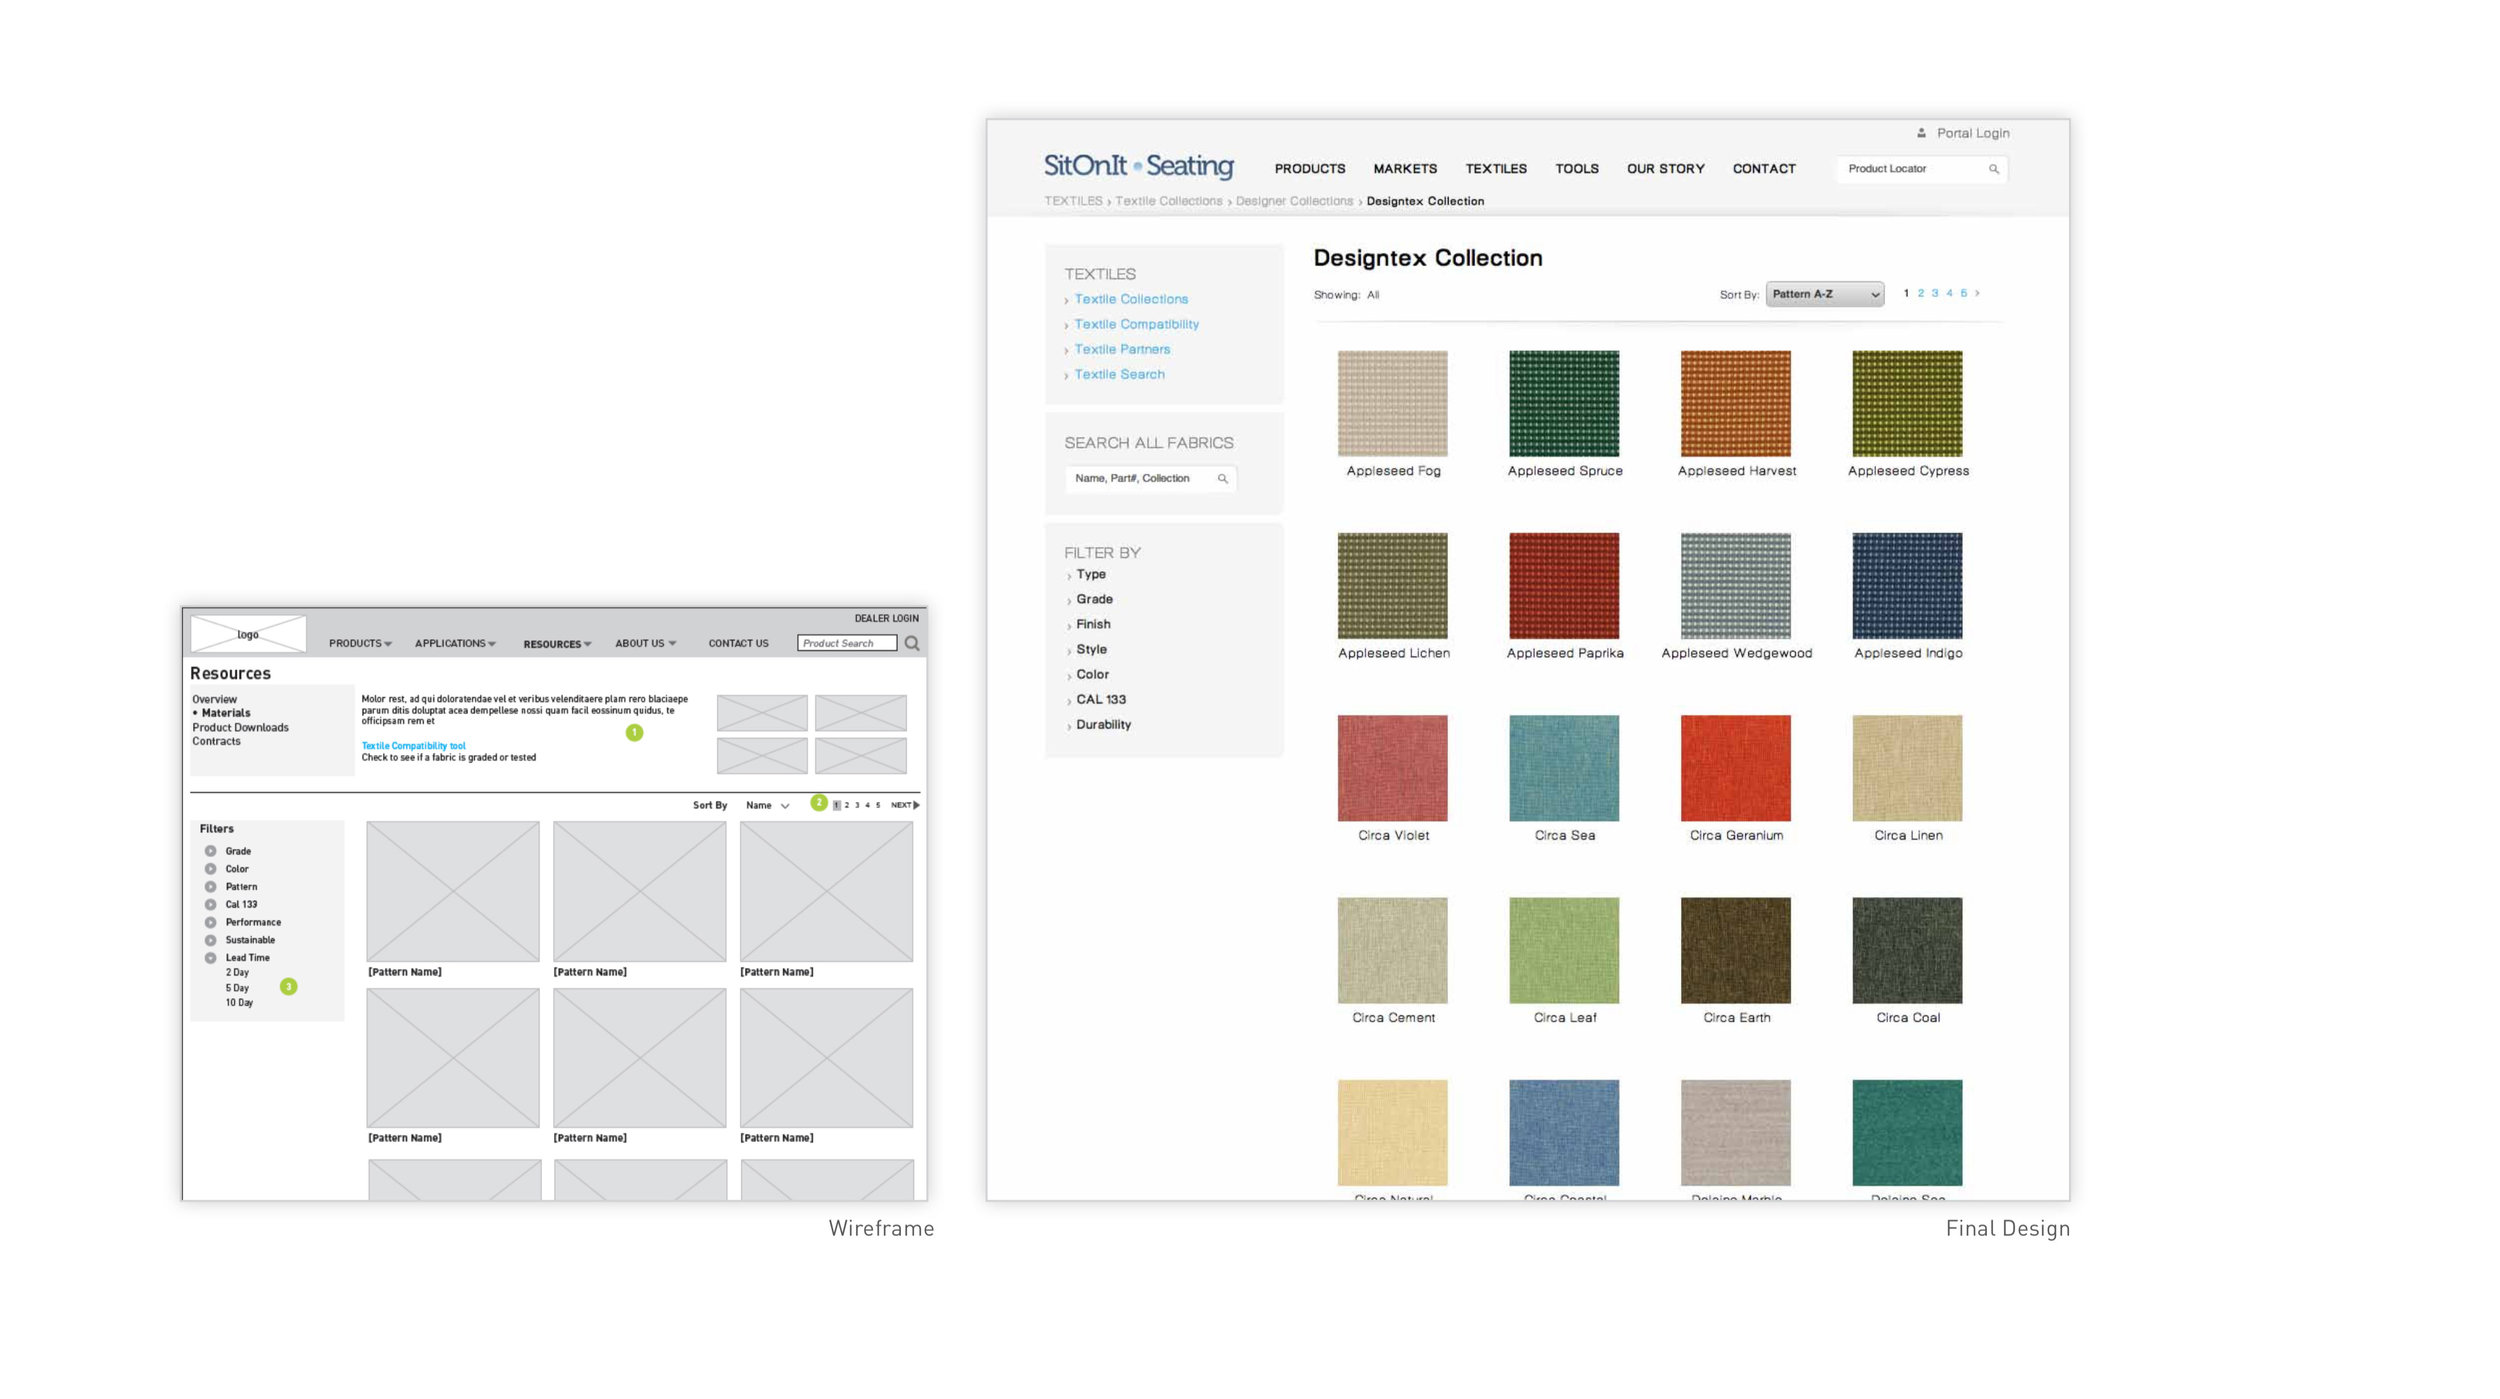 Clear & Simple - For users who are interested in browsing Exemplis' database of materials, we introduced an interface that allows mixing and matching products and featuress.Search functionality, sorting, and filtering allow directed users to quickly and easily find the textiles they are searching for.Large clear thumbnails, broken into textile categories, allowing for users to browse through the materials database.